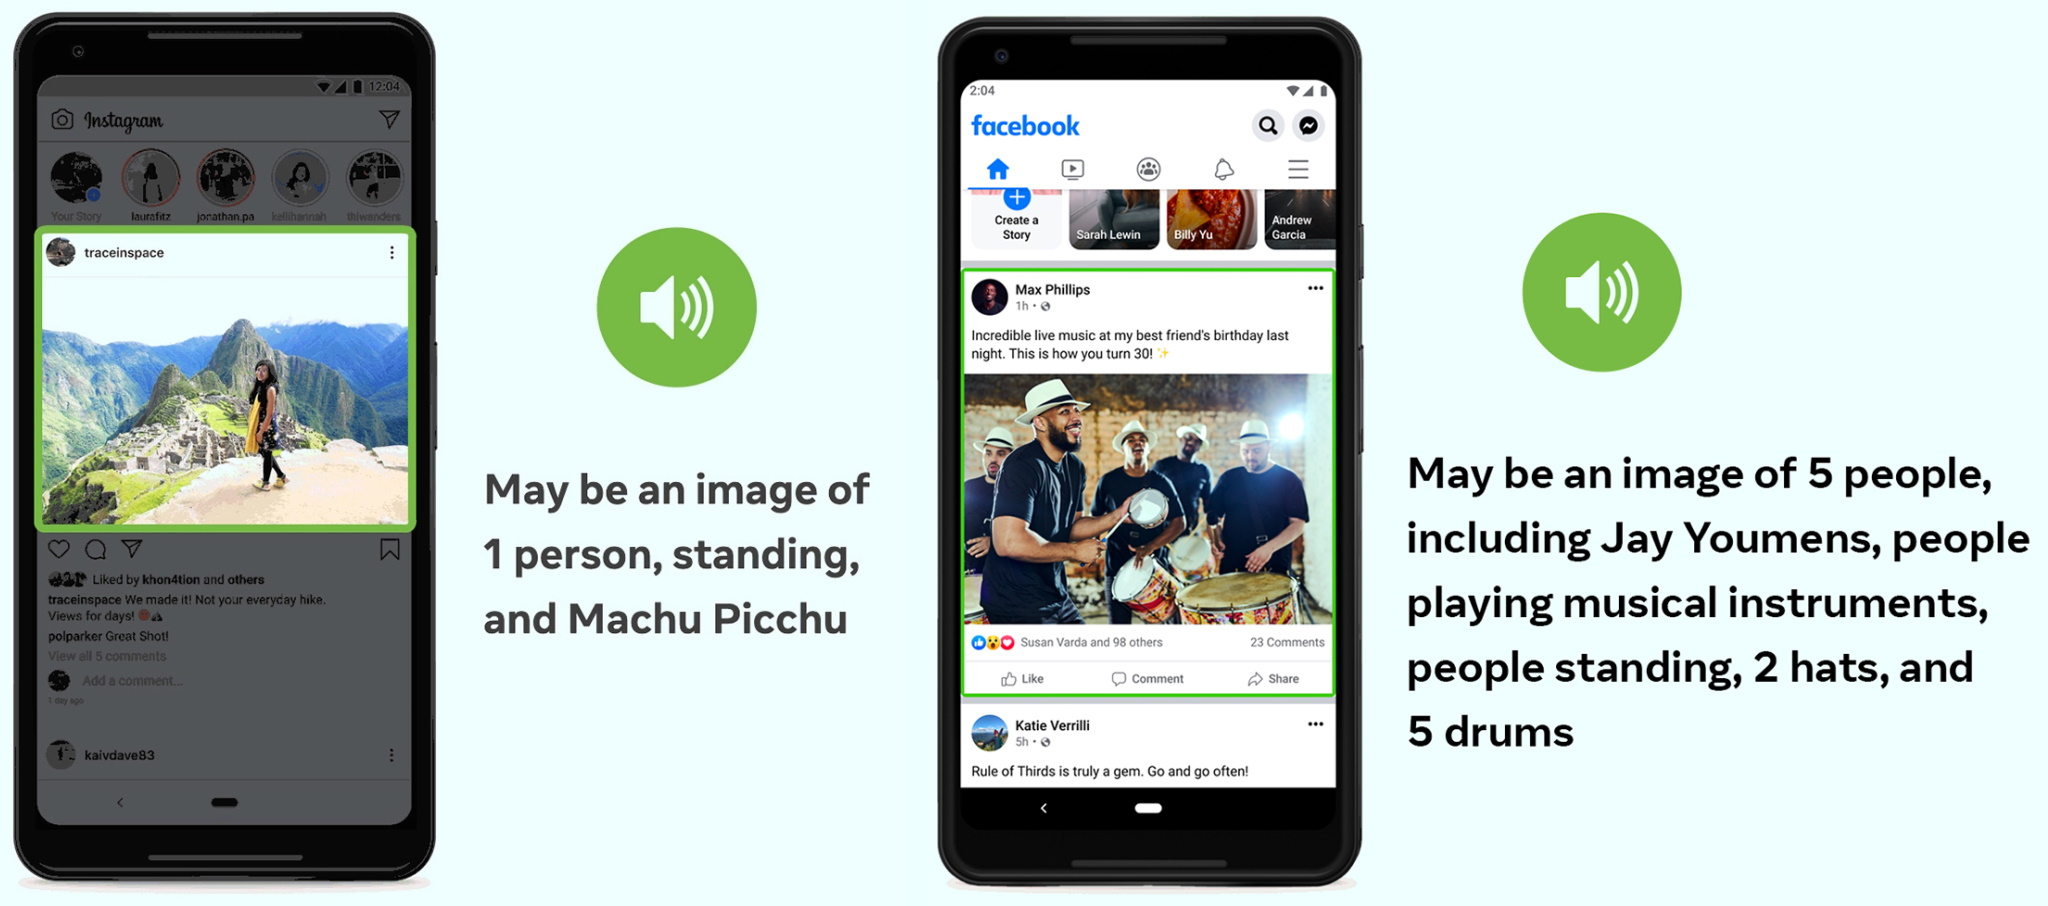 techcrunch.com - Devin Coldewey - Facebook and Instagram's AI-generated image captions now offer far more details